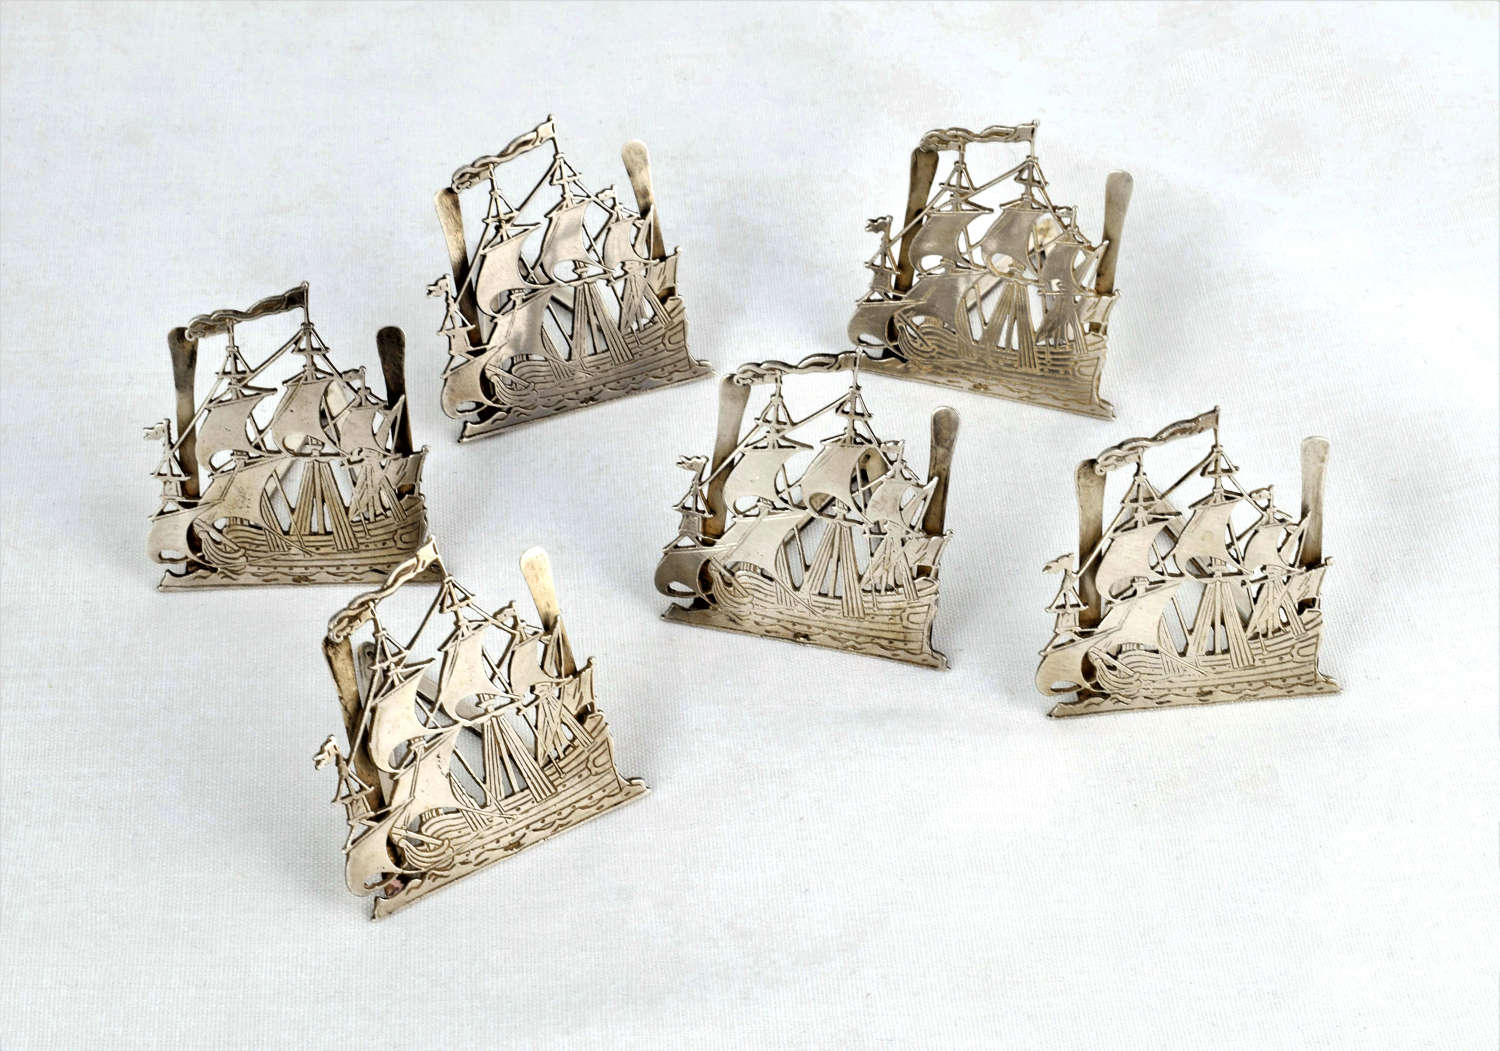 Set 6 Novelty Dutch Silver Menu Place Card Holders Galleon Ships